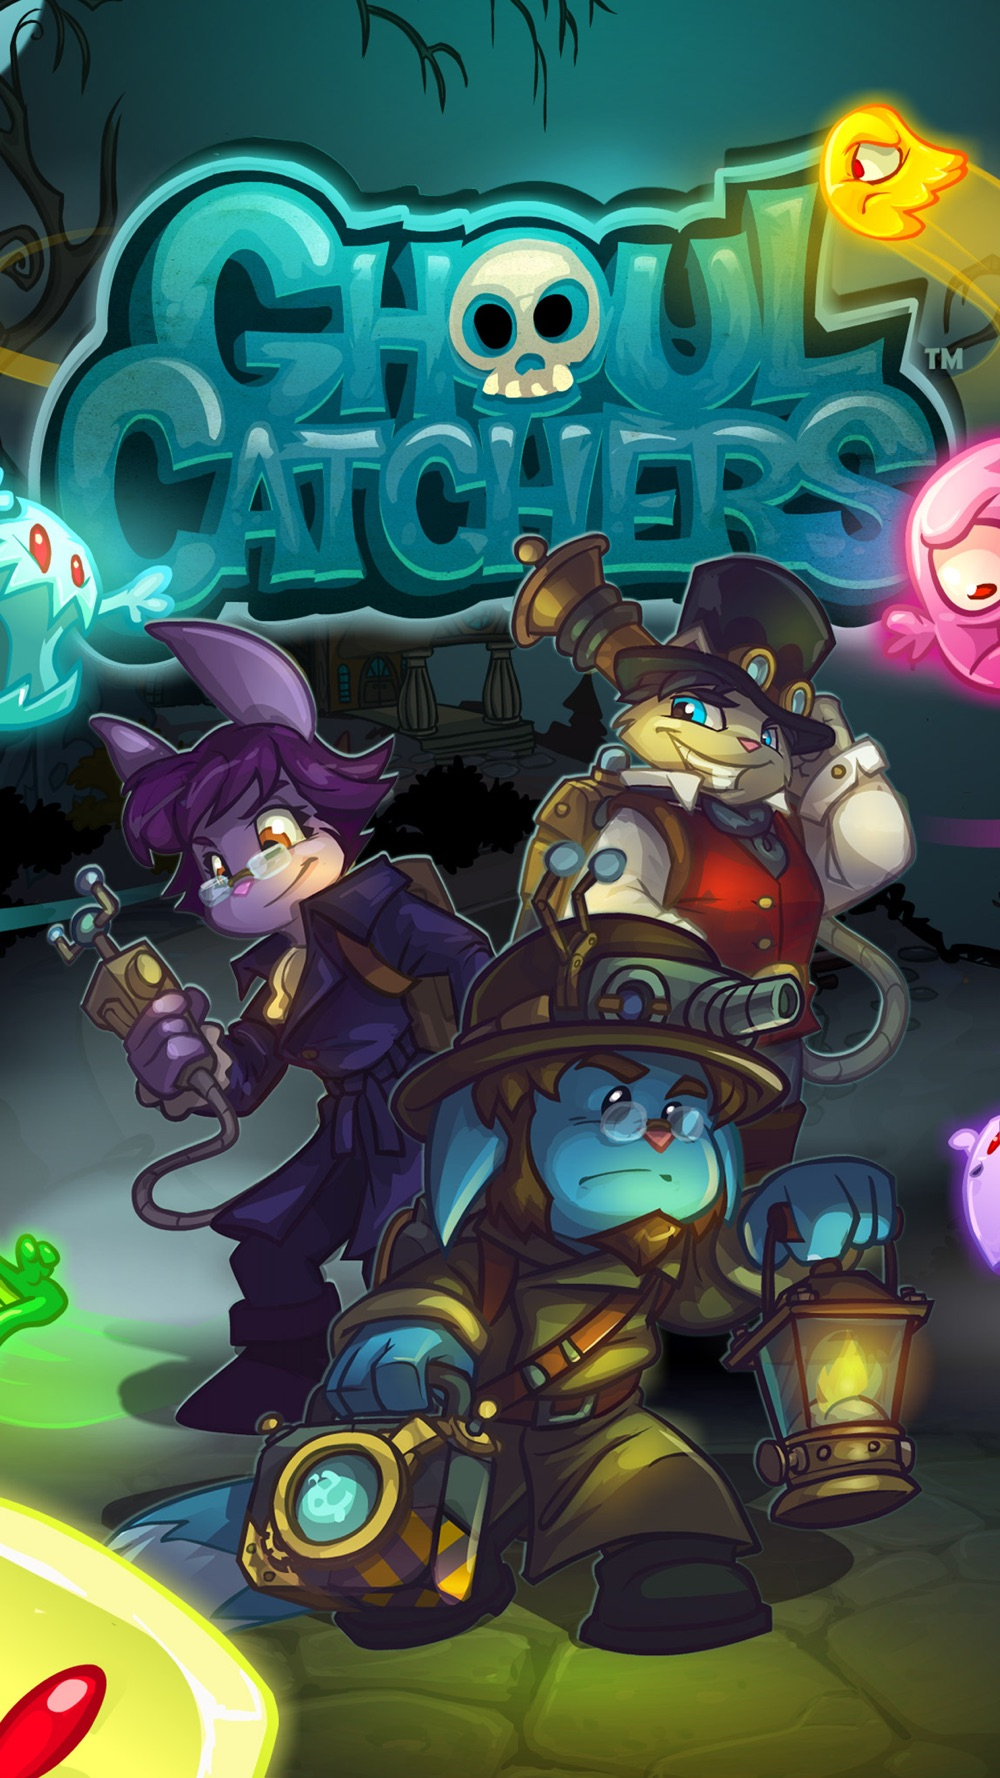 Ghoul Catchers by Neopets Cheat Codes